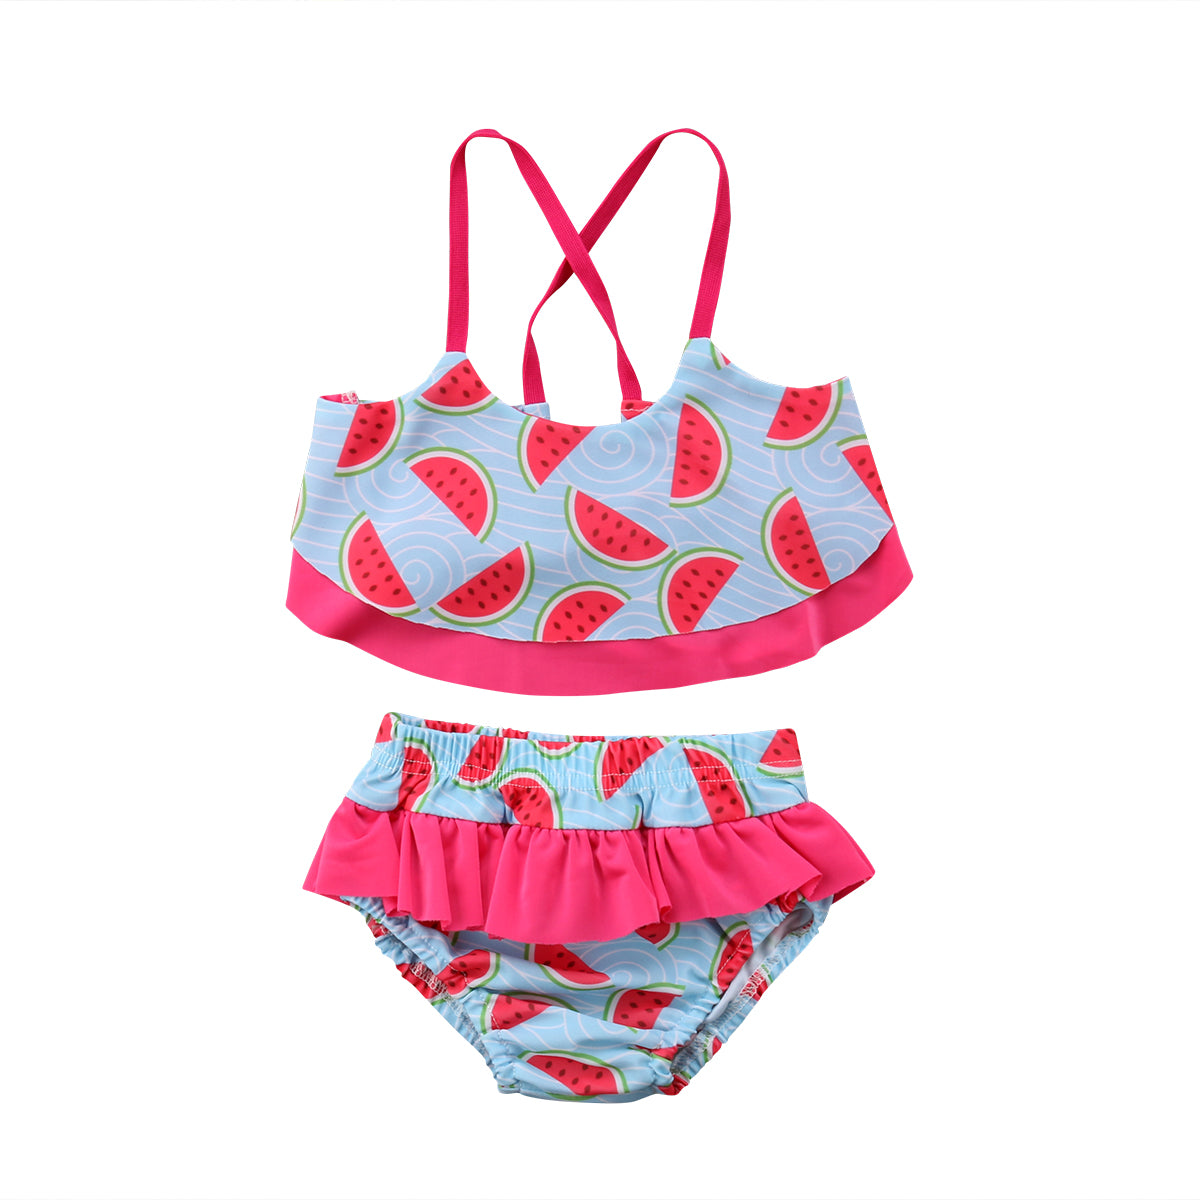 Toddler Kids Baby Girls Set Summer Infant Watermelon Clothes Tops+Shorts 2Pcs Outfits